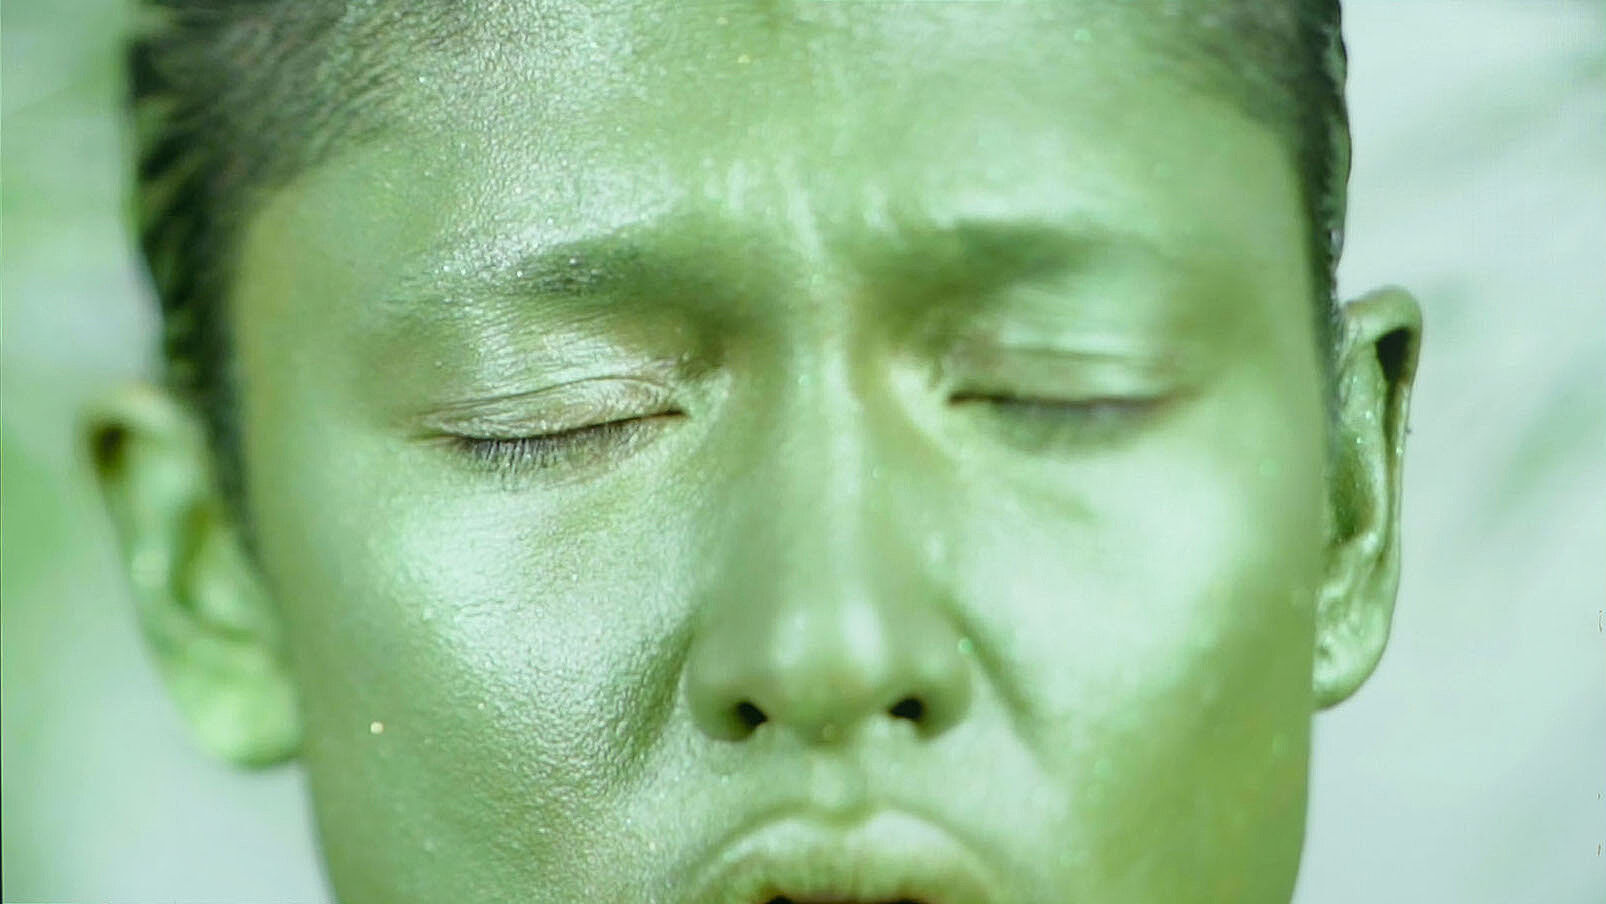 A close up video still of a person's face painted green.